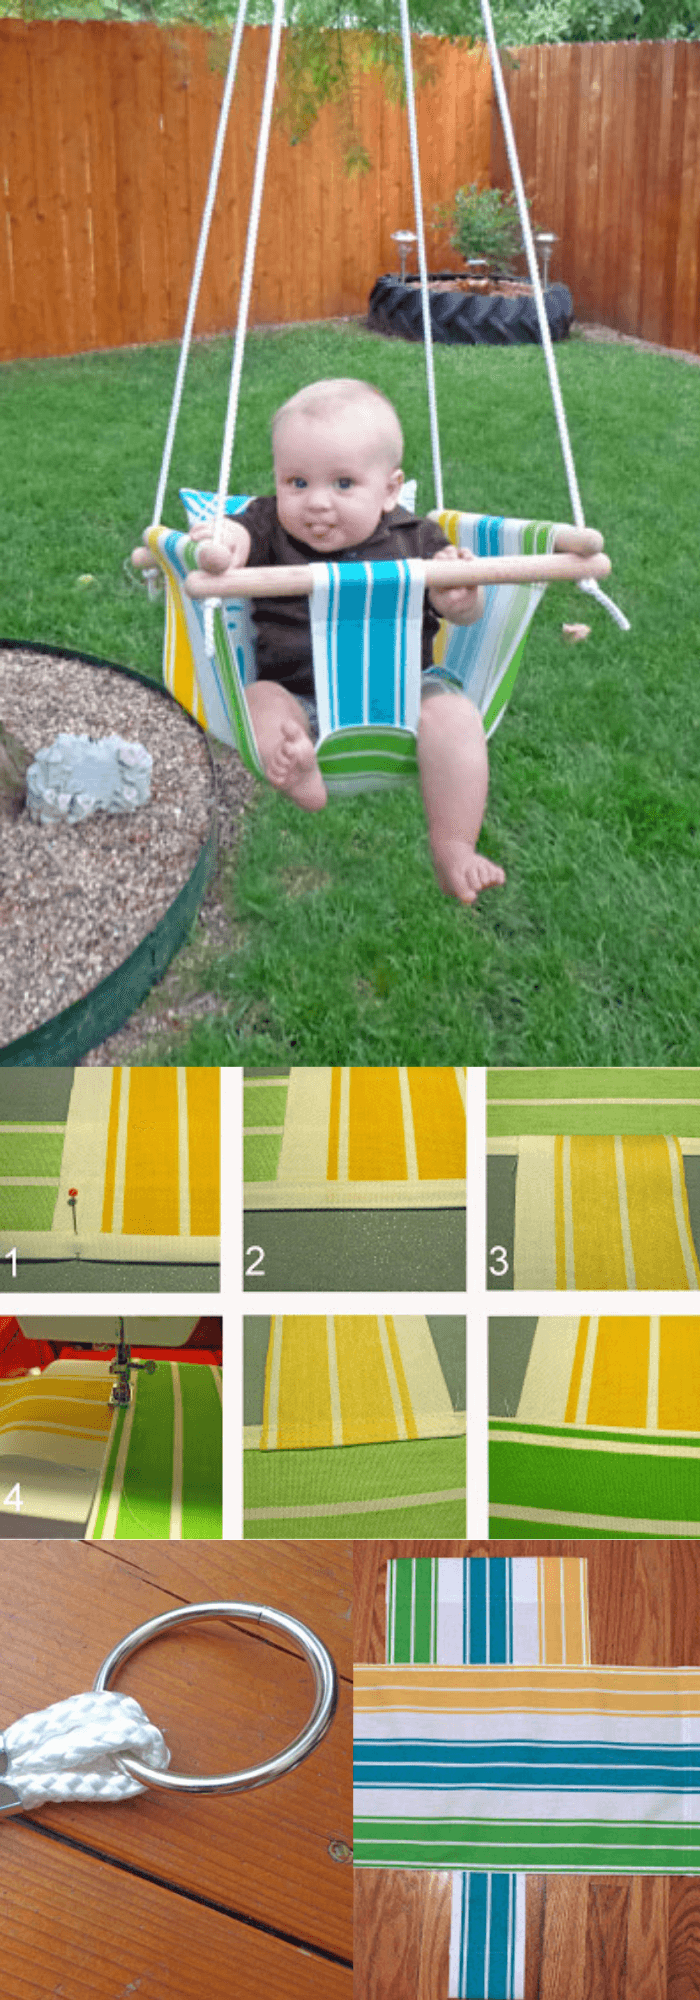 best backyard hammock ideas Baby hammock style swing